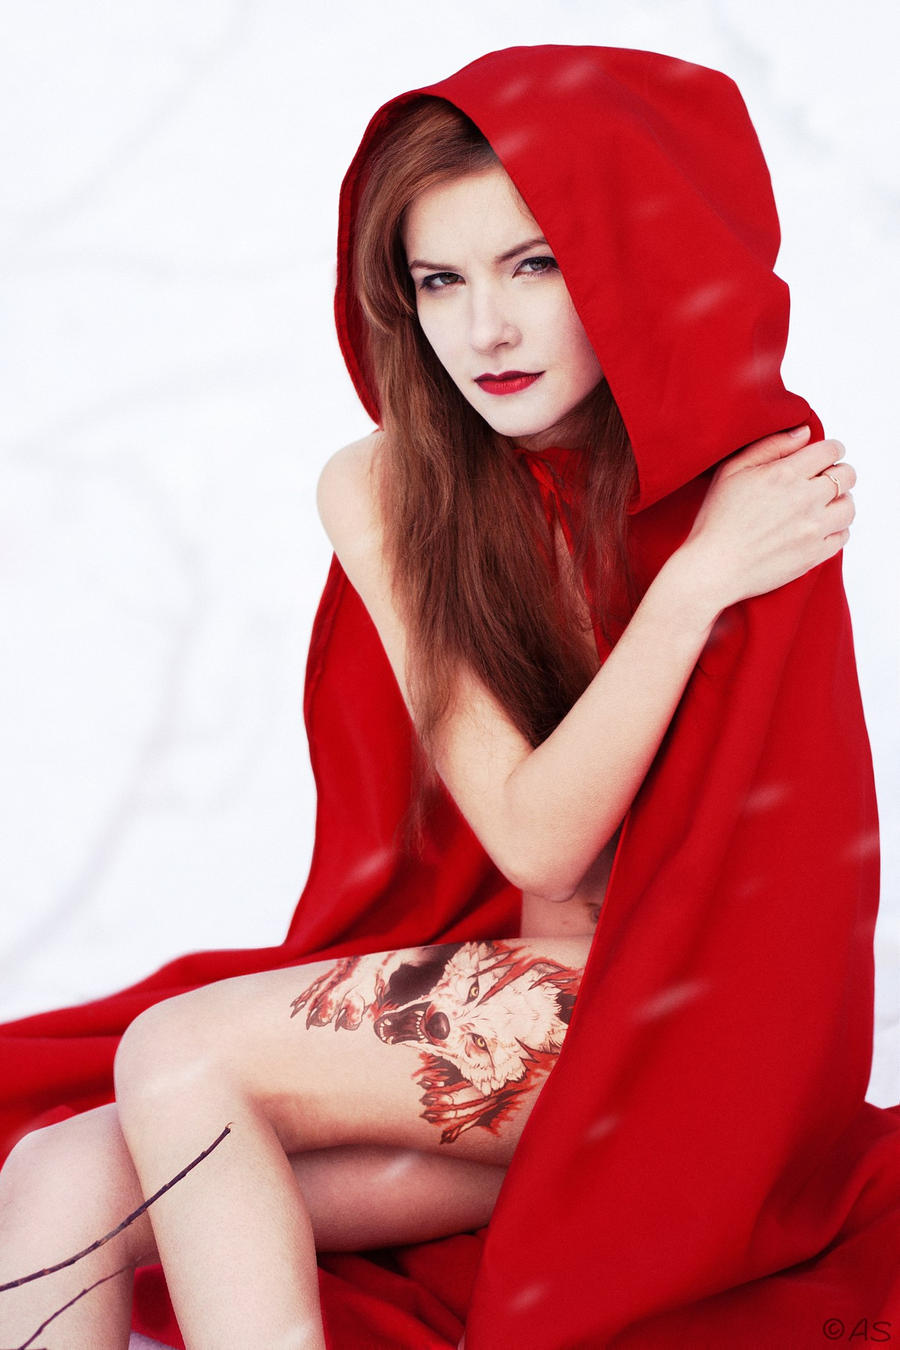 Something Sexy little red riding hood nude